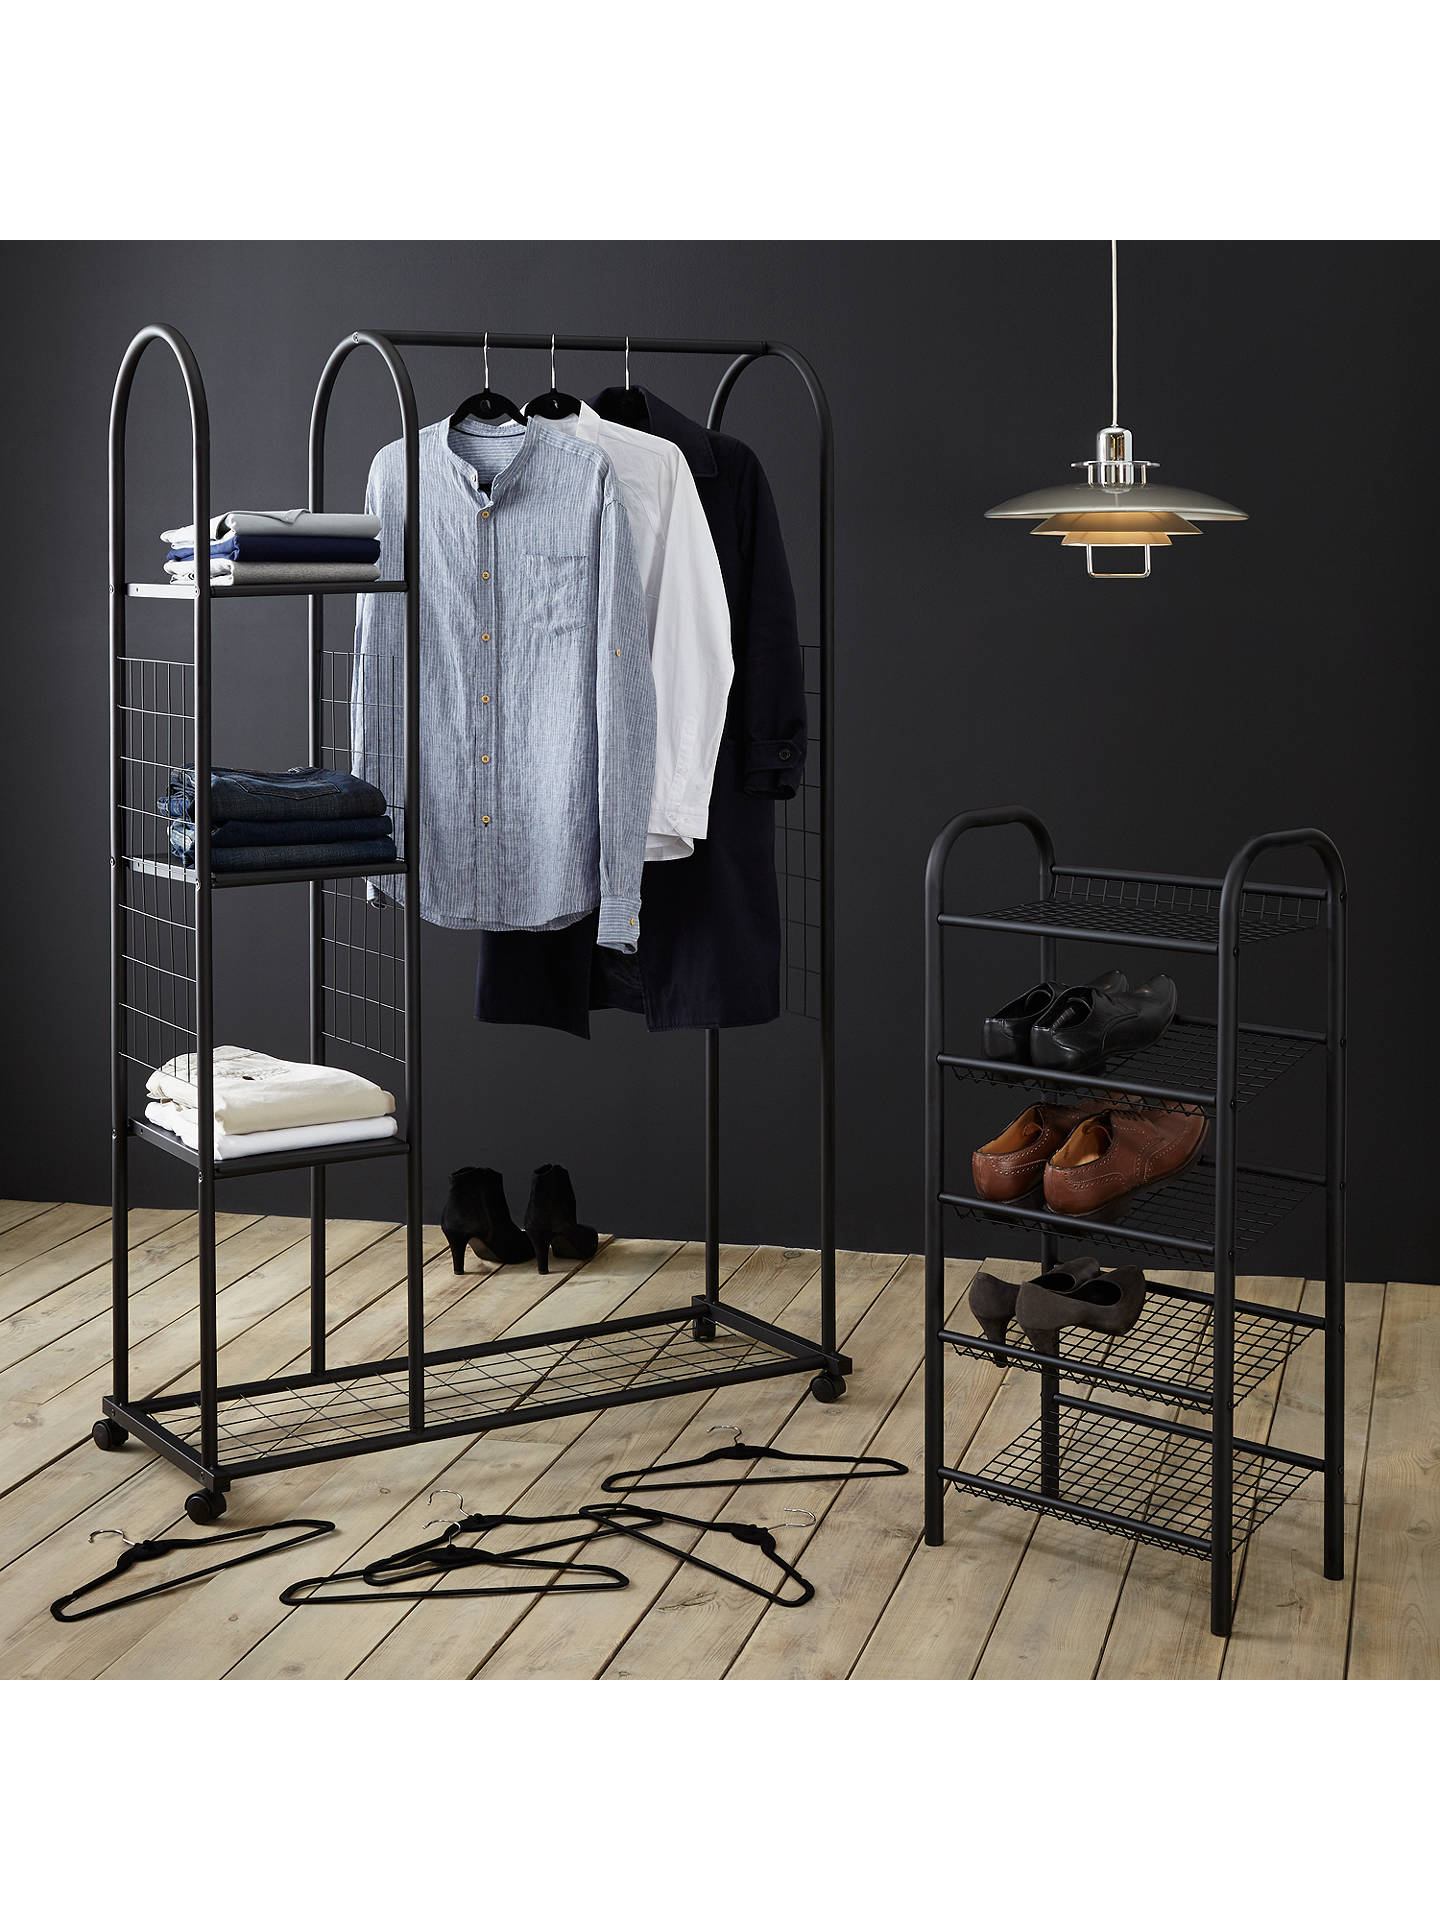 BuyJohn Lewis Flocked Jacket Hanger, Black, Set of 10 Online at johnlewis.com